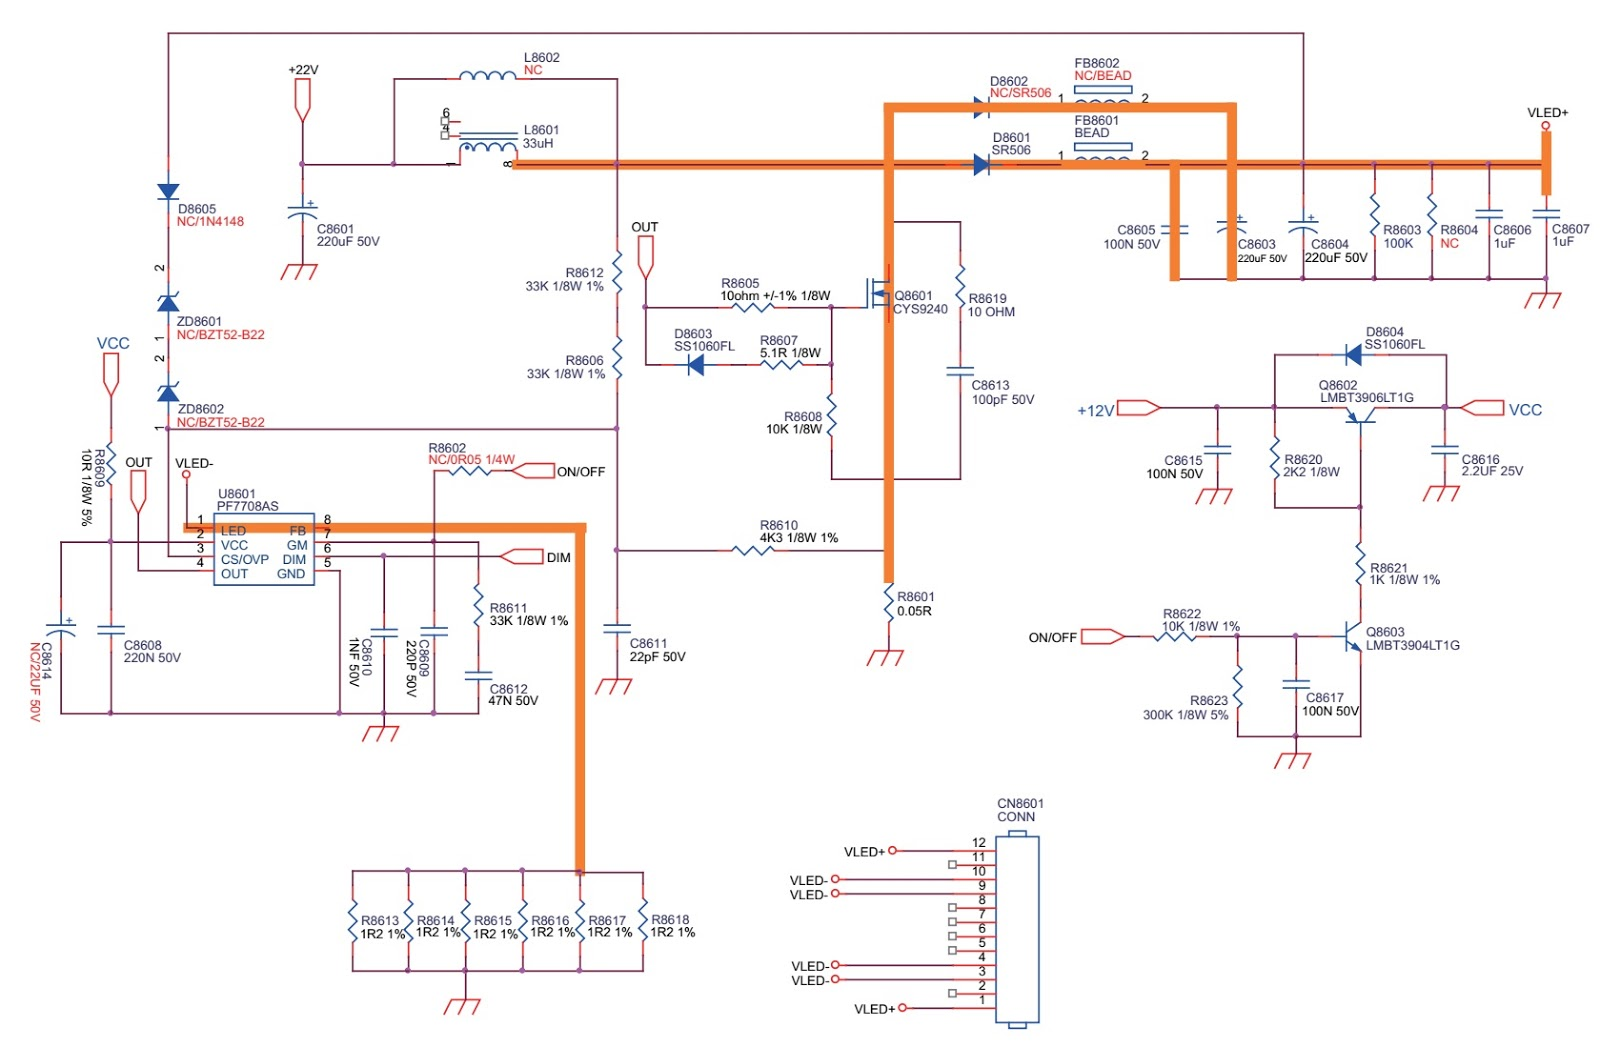 ballast wiring diagram single phase 208 appealing phillips tractor wiring photos best image wire binvm us ford starter relay diagram phillips solenoid [ 1600 x 1048 Pixel ]